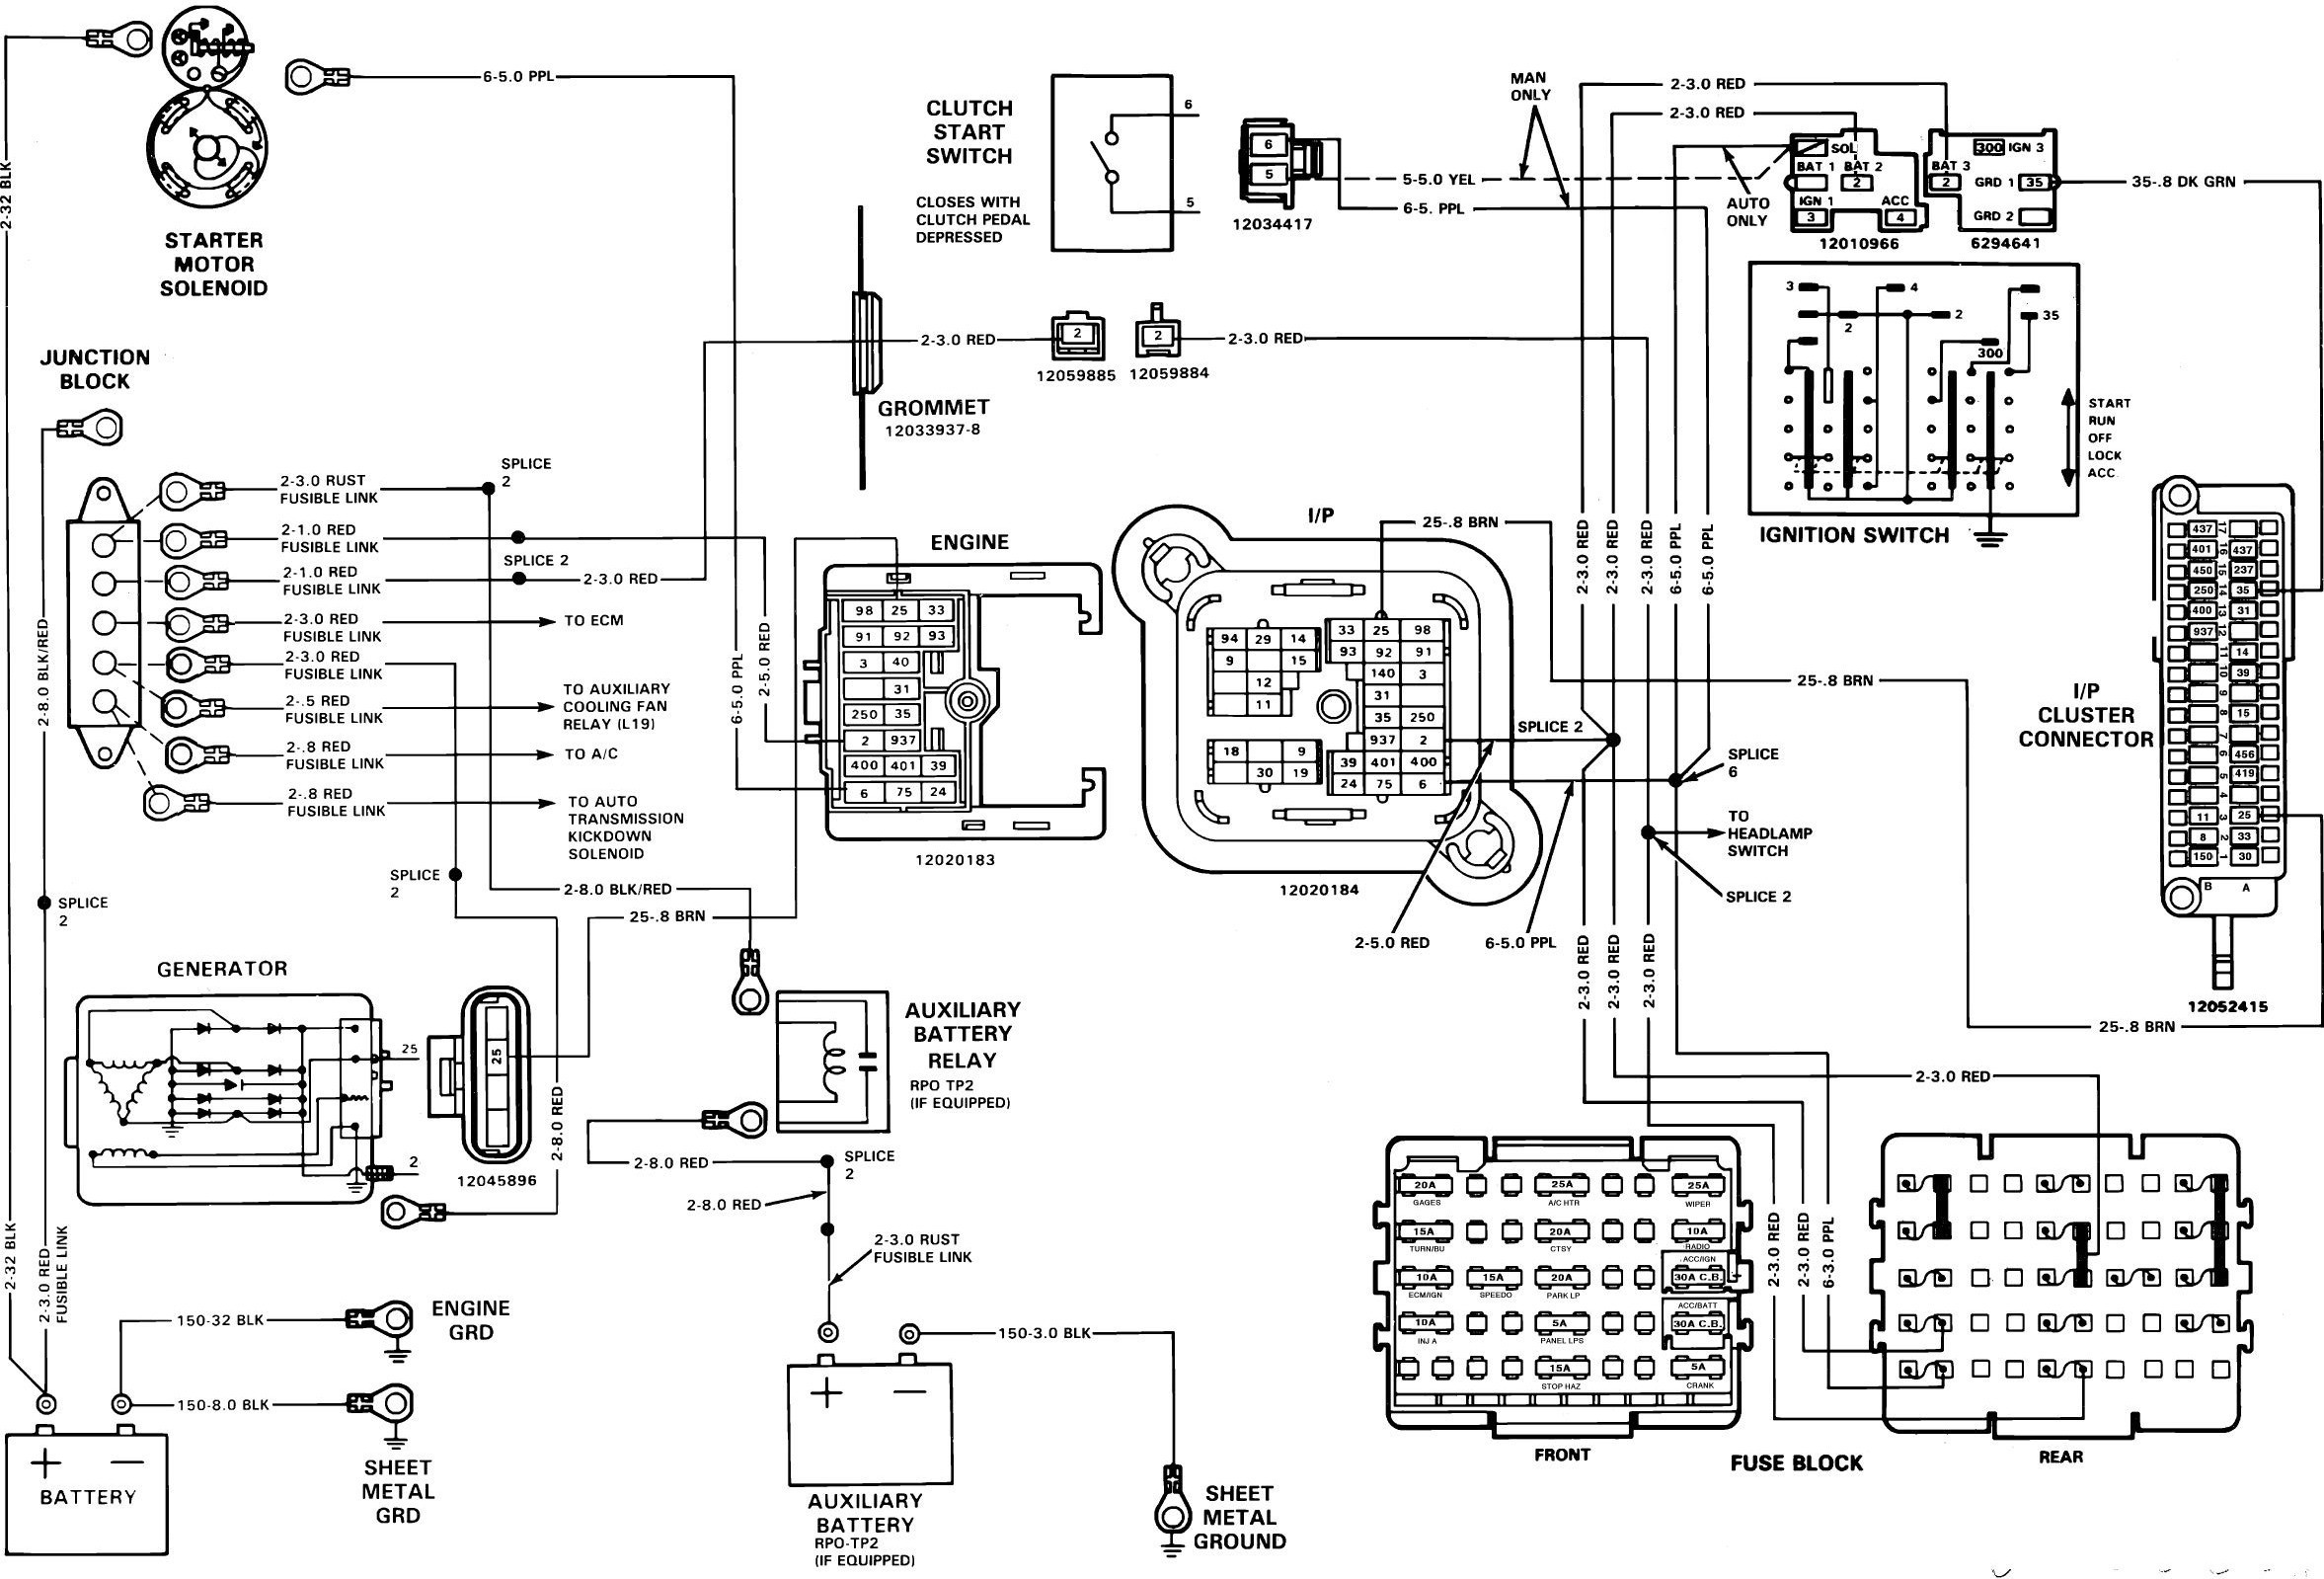 1989 Gm Fuse Box Diagram